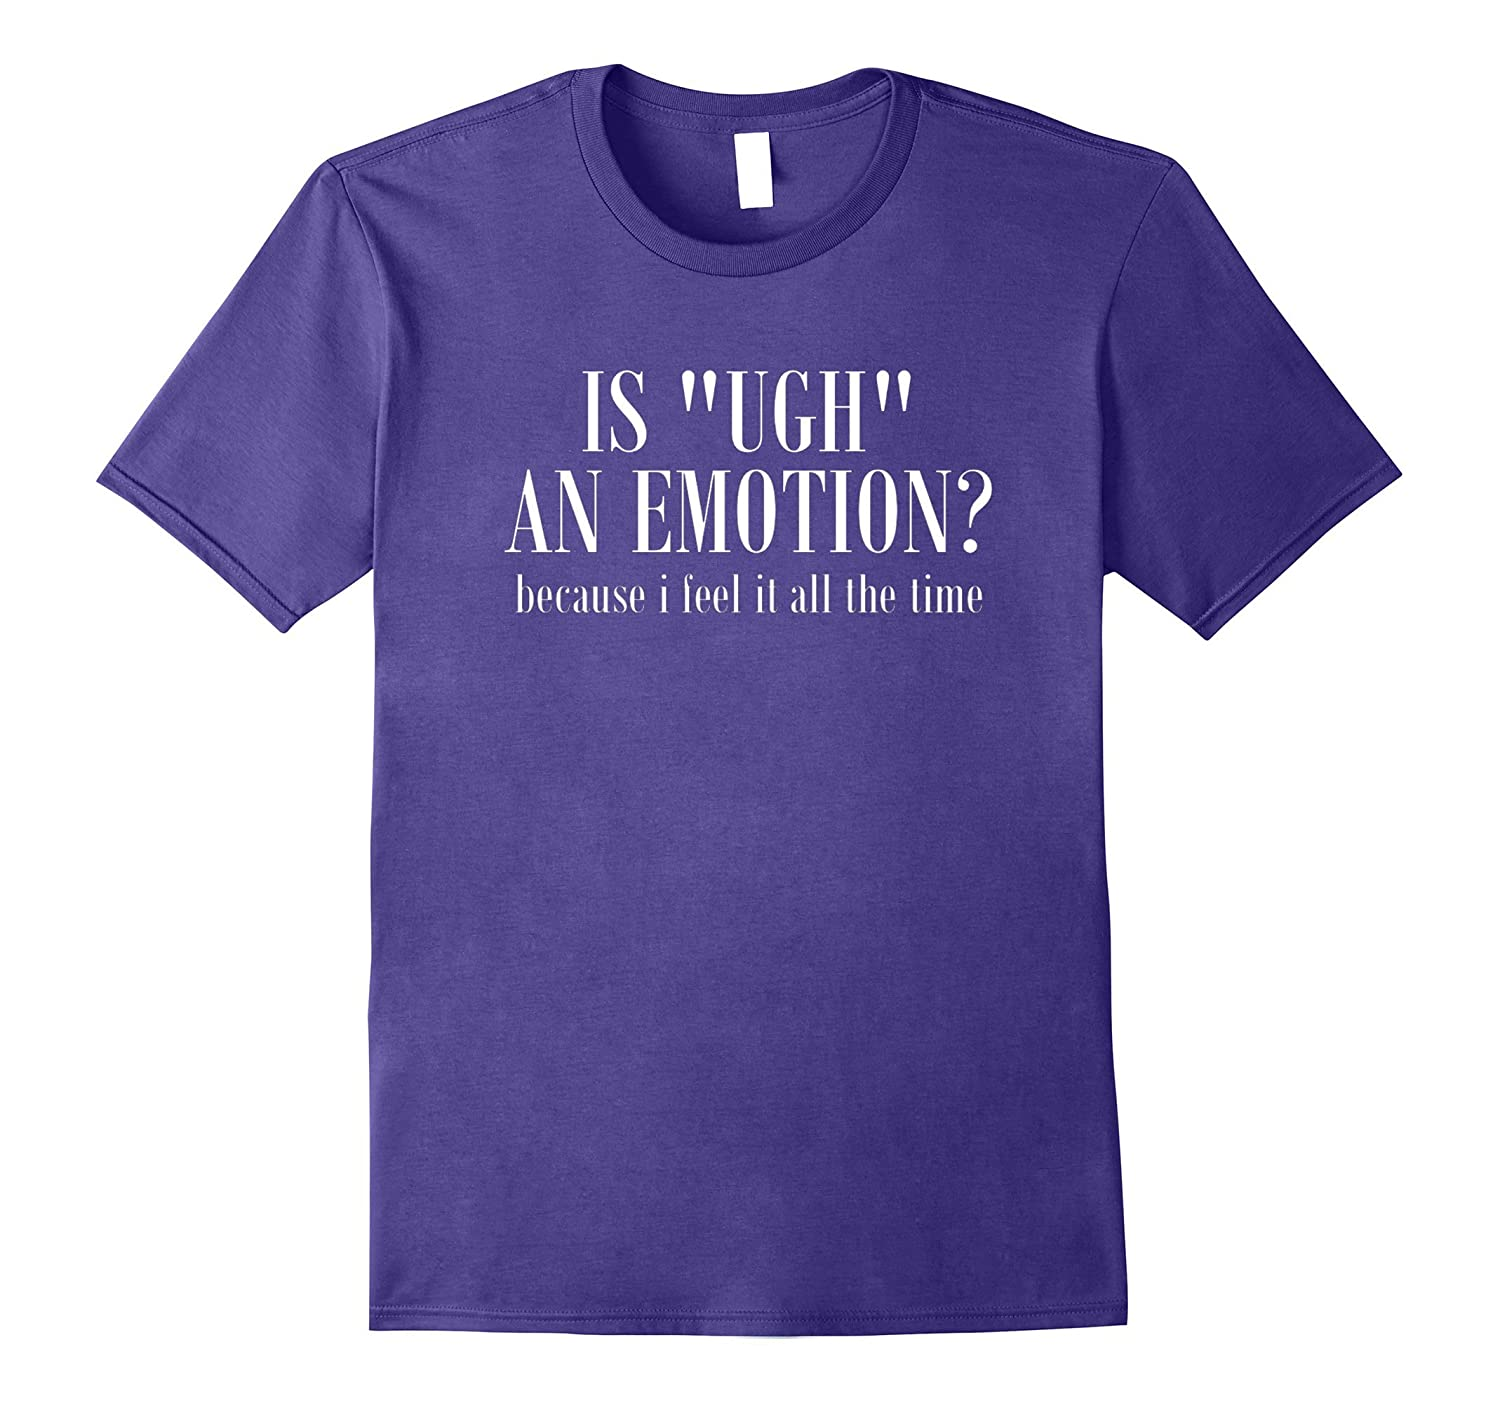 Is Ugh An Emotion I Feel It Every Day T-Shirt funny saying-Vaci